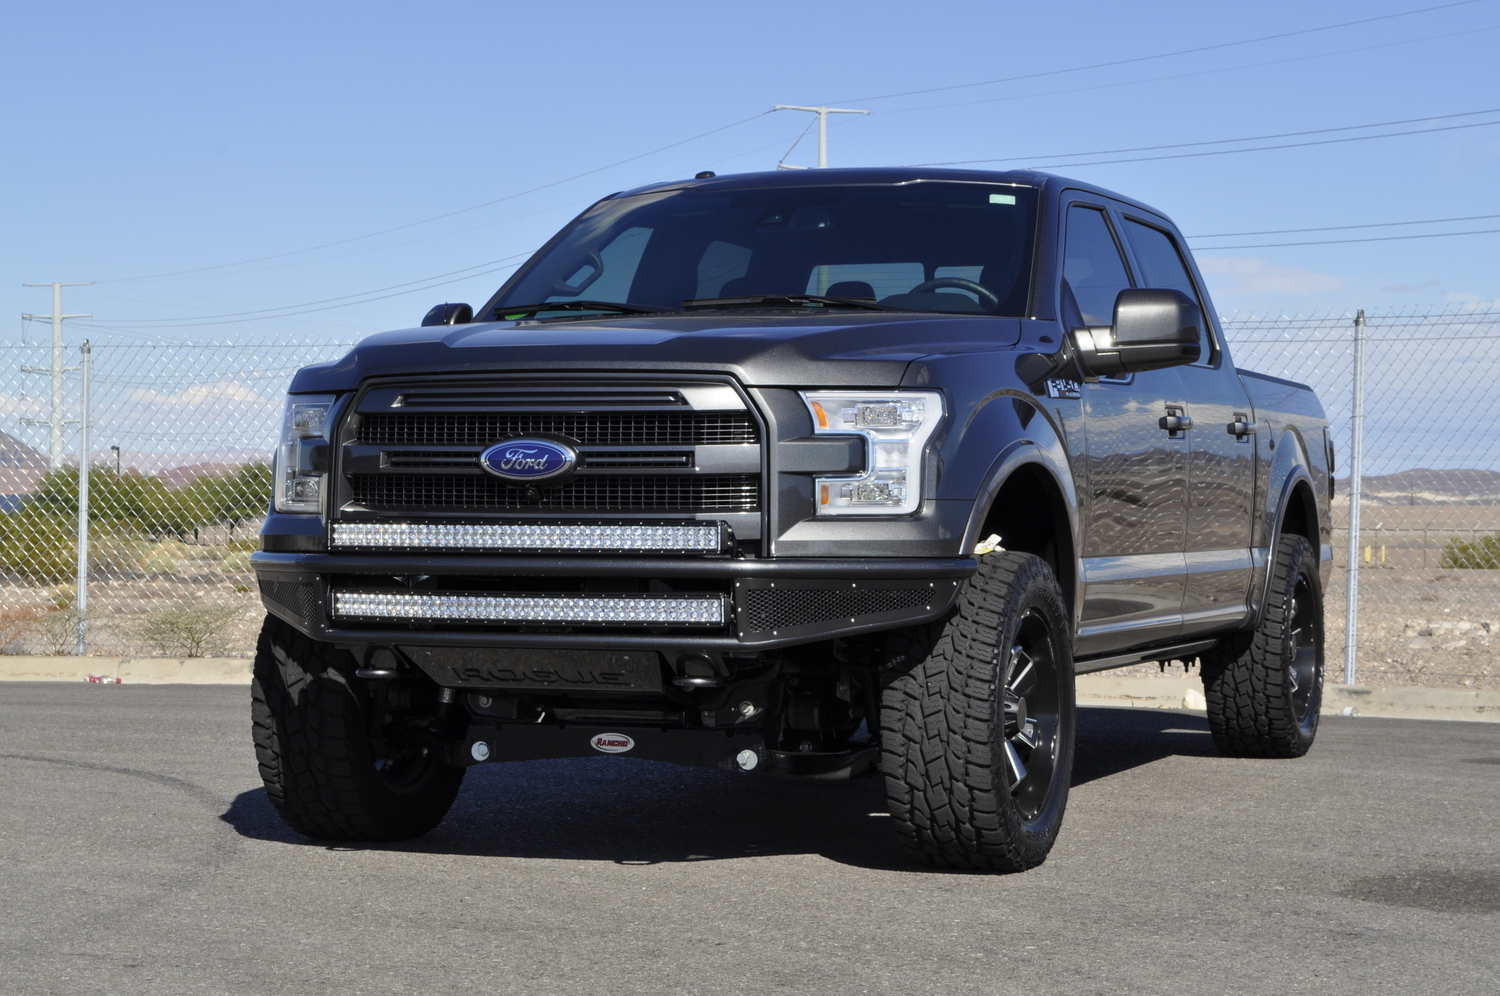 Performance tuned off road suspension for the 2015 current ford f 150s featuring rogue racing upper control arms lower control arms spindles and billet